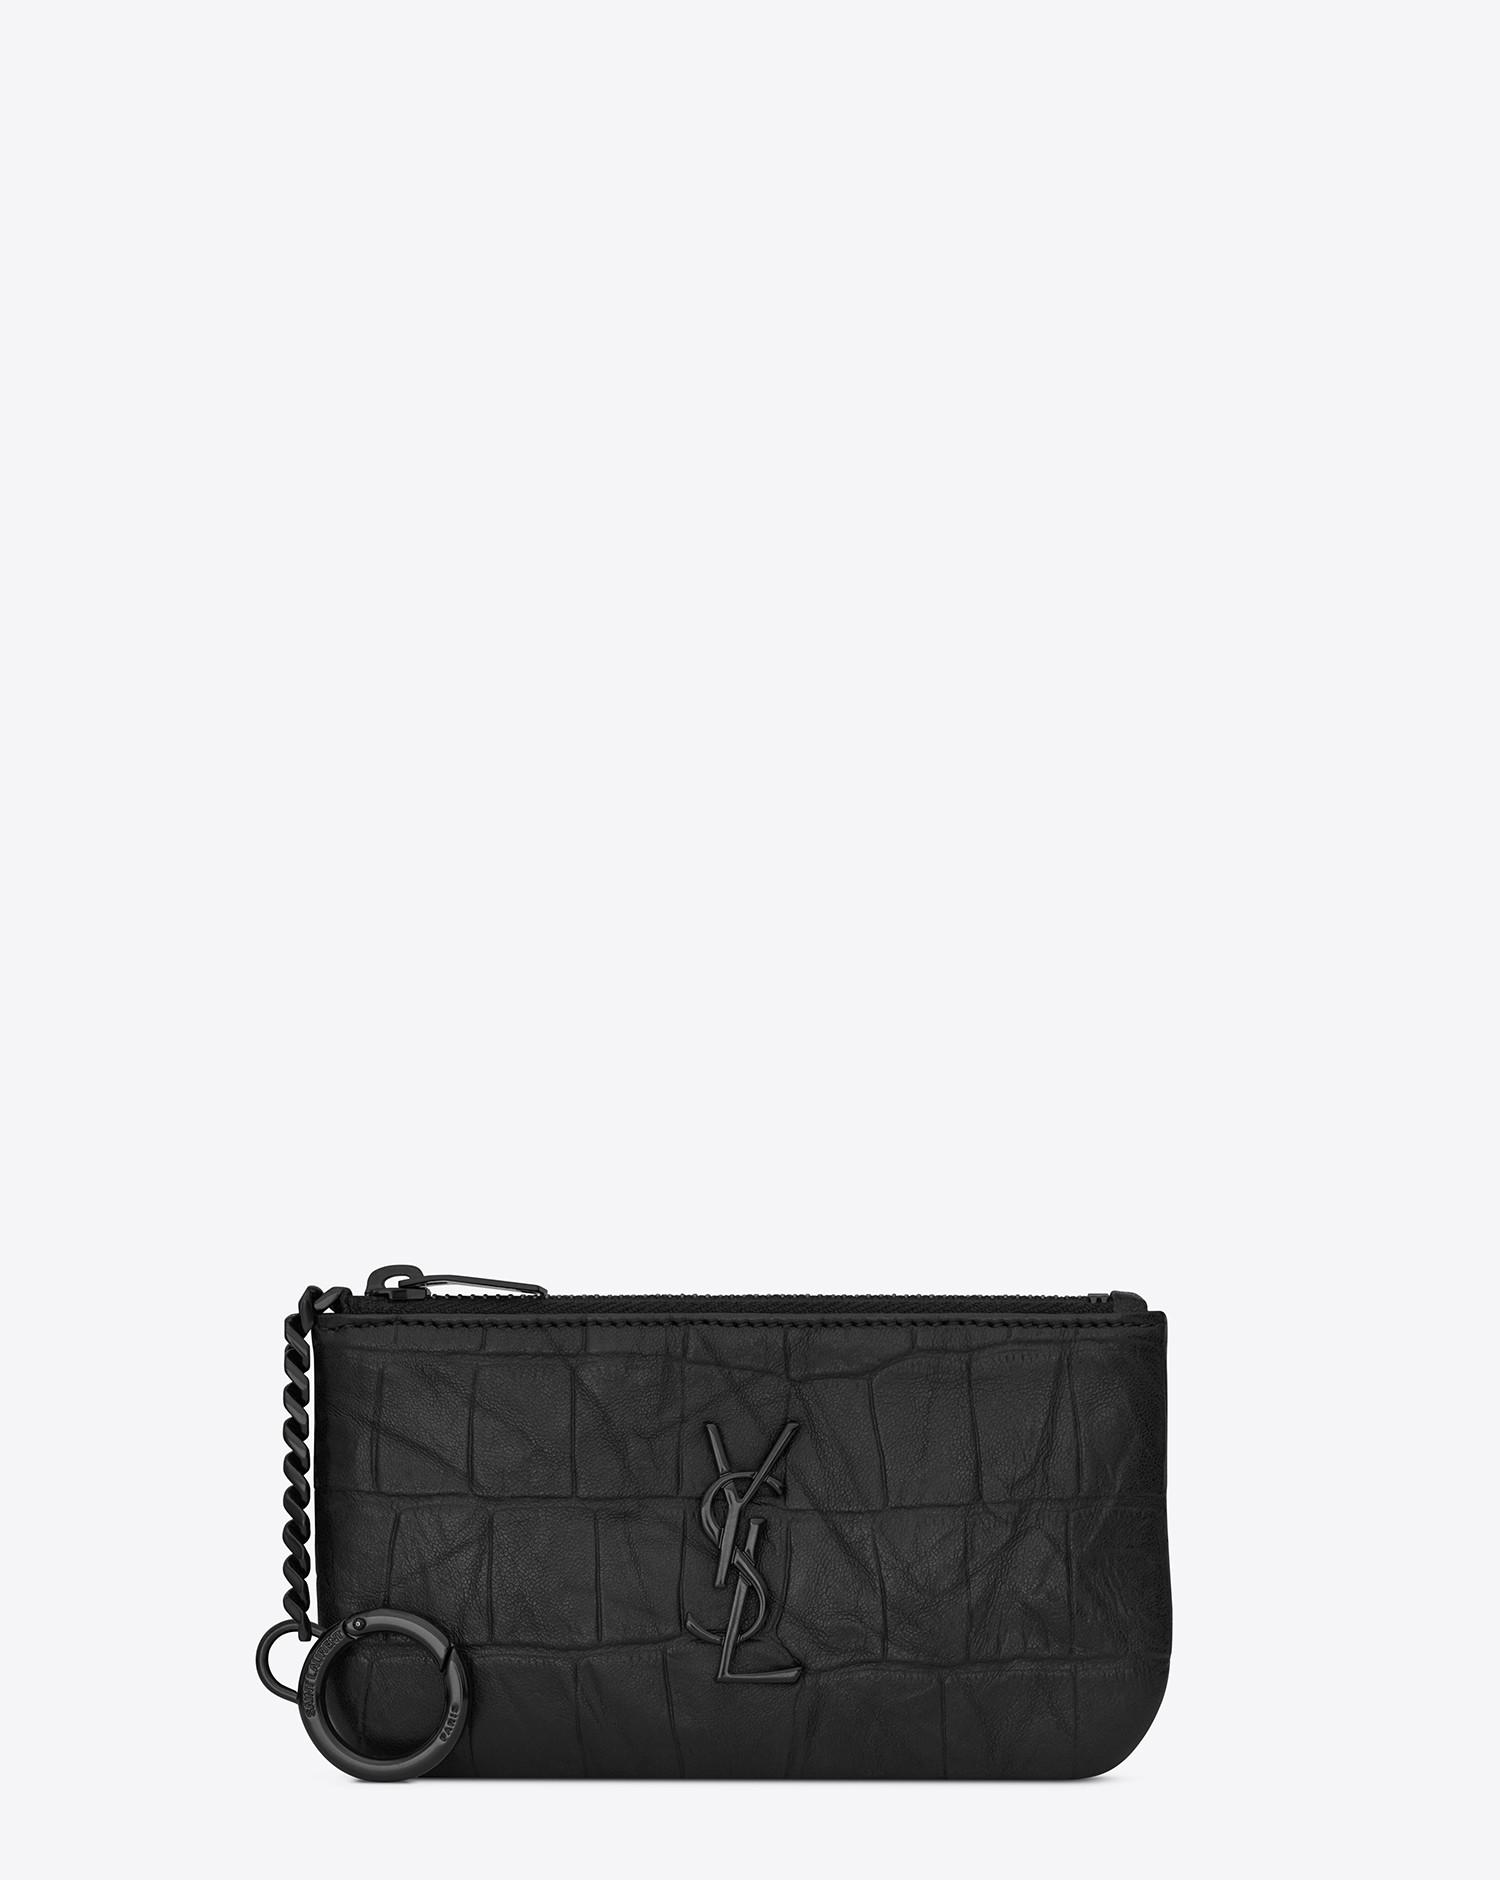 a5466780ae Lyst - Saint Laurent Monogram Key Pouch In Crocodile Embossed Leather in  Black for Men